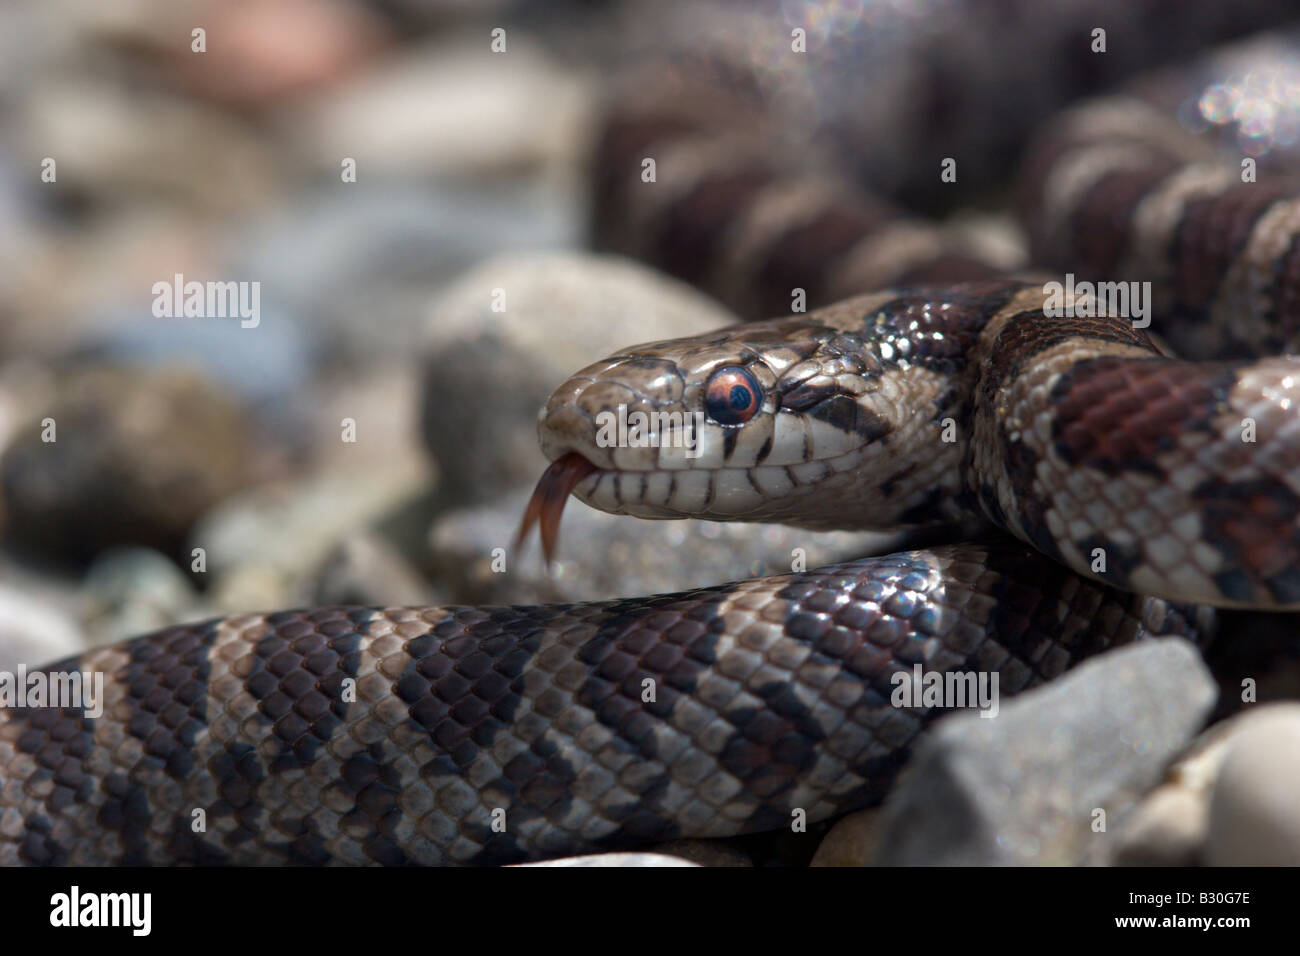 milk snake reptile cold blooded serpent - Stock Image